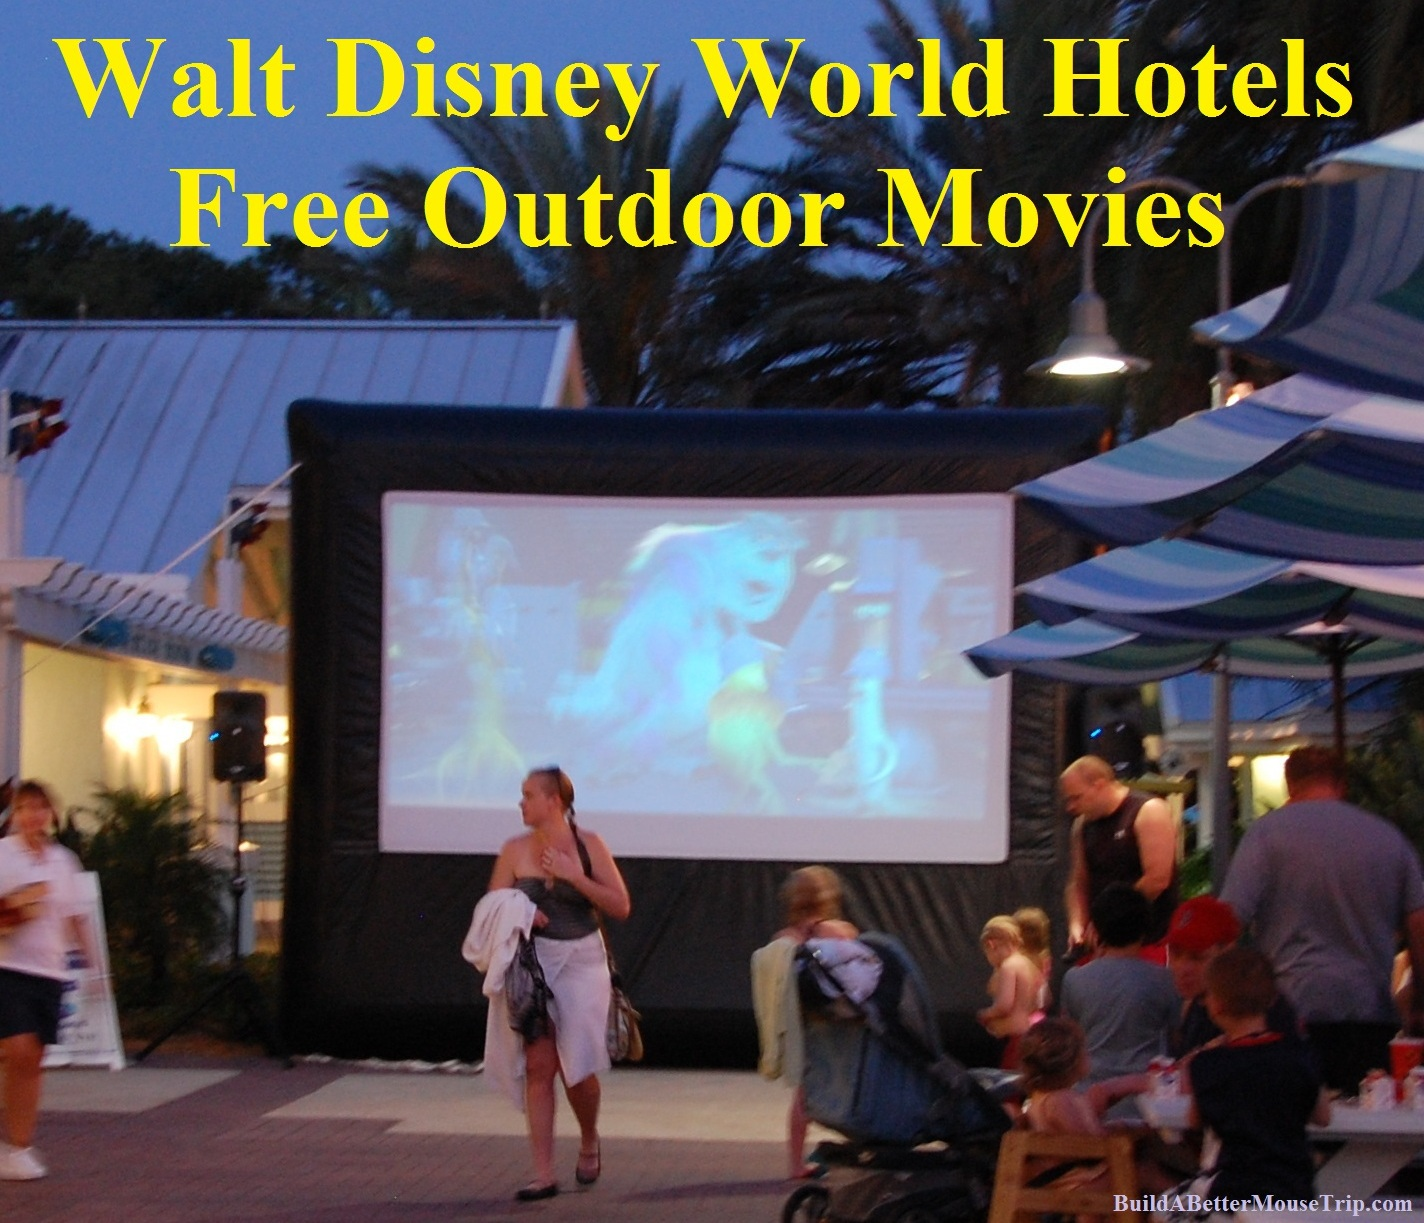 Free Movie Under the Stars at the Walt Disney World Resort hotels. For the current movie schedule, see: http://www.buildabettermousetrip.com/wdw-outdoor-movie-schedule/